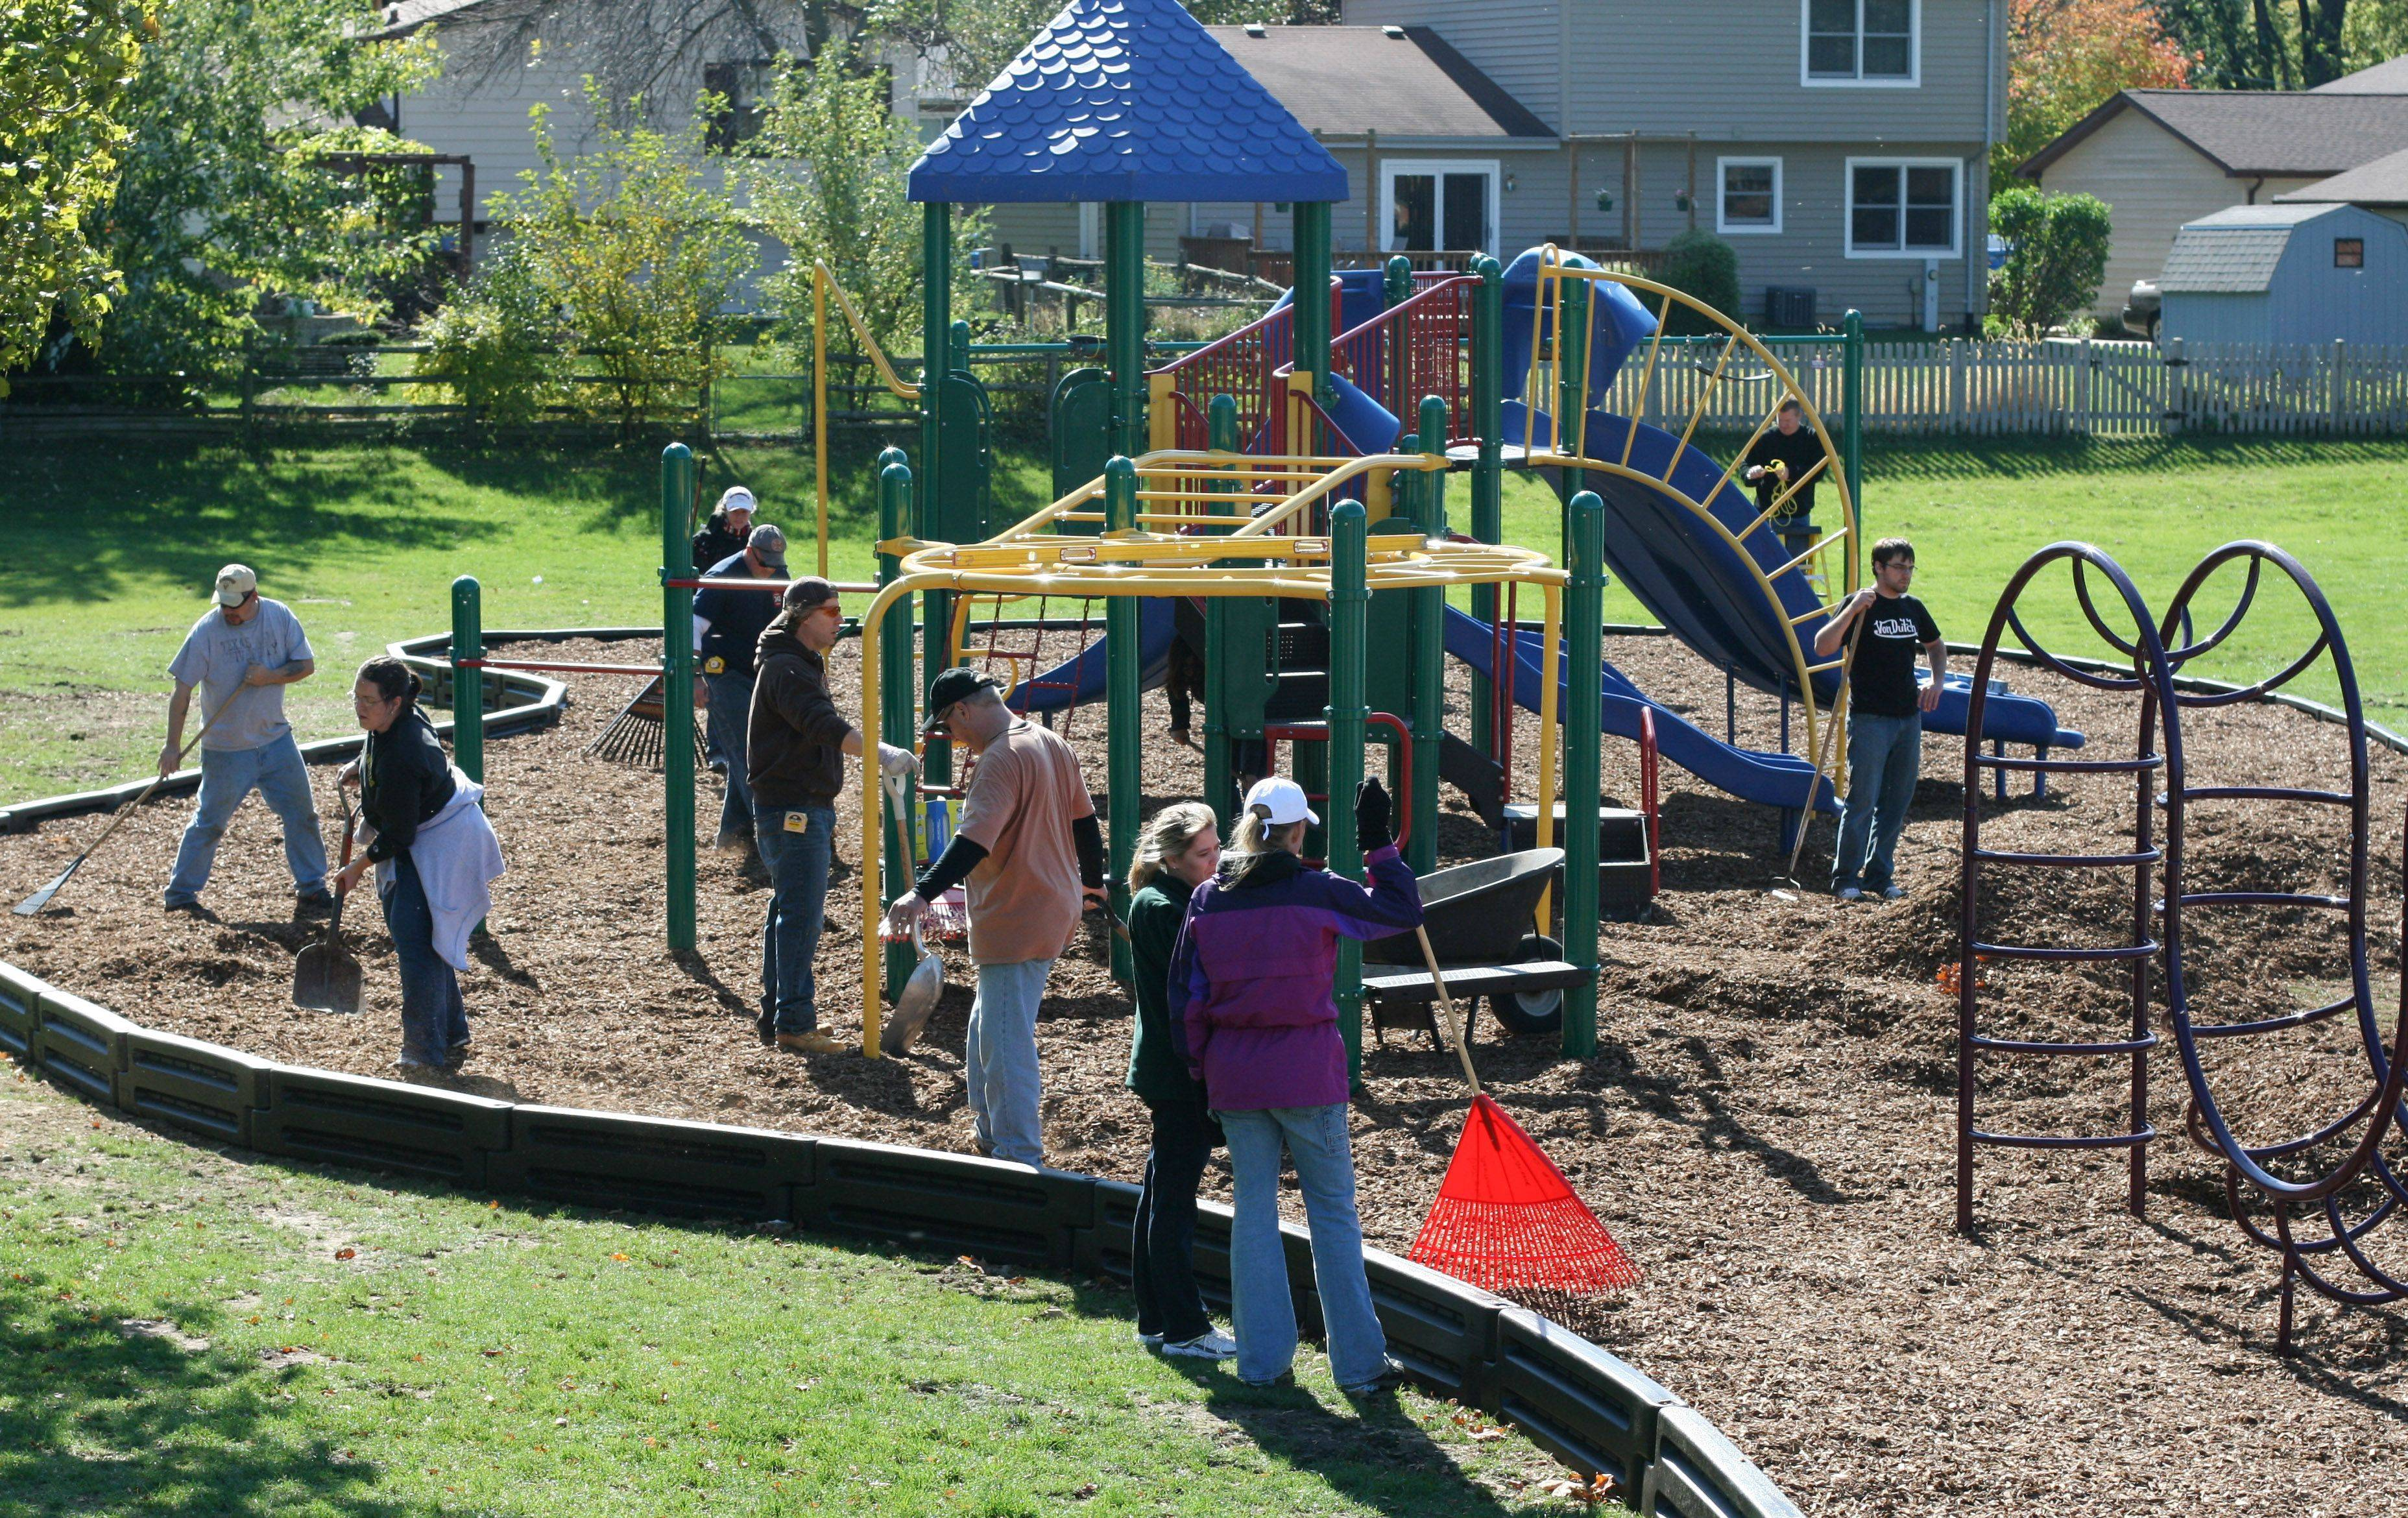 More than 40 community volunteers and staff of Mundelein Elementary District 75 completed construction of Eagle Park, a new playground at Washington Elementary School in Mundelein. The two-day project was completed Oct. 15.